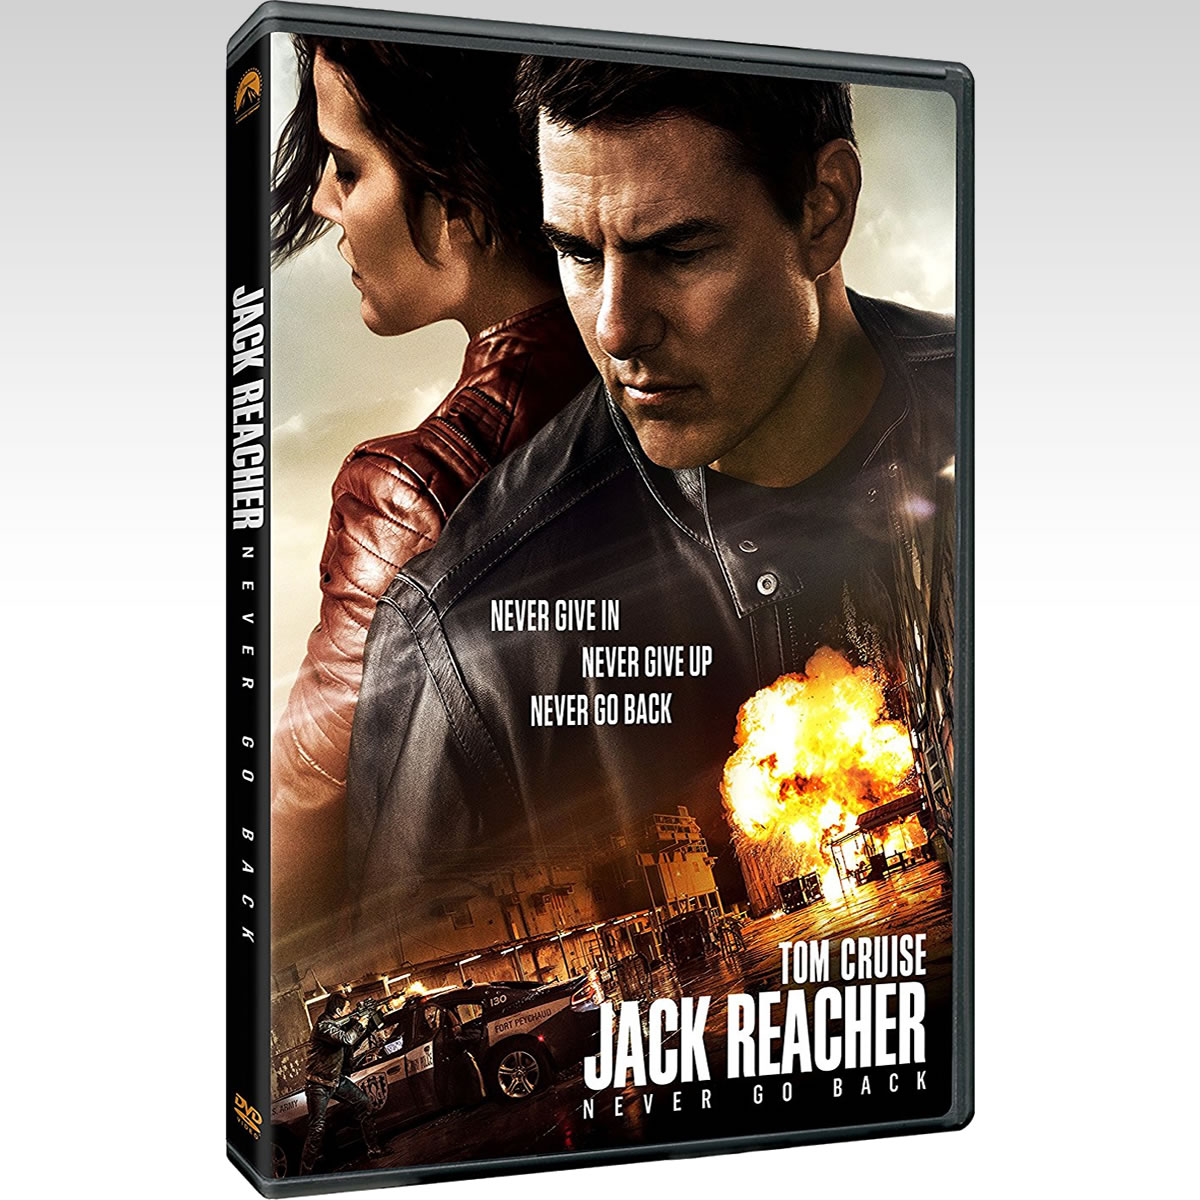 JACK REACHER: NEVER GO BACK - JACK REACHER: ΠΟΤΕ ΜΗ ΓΥΡΙΖΕΙΣ ΠΙΣΩ (DVD)